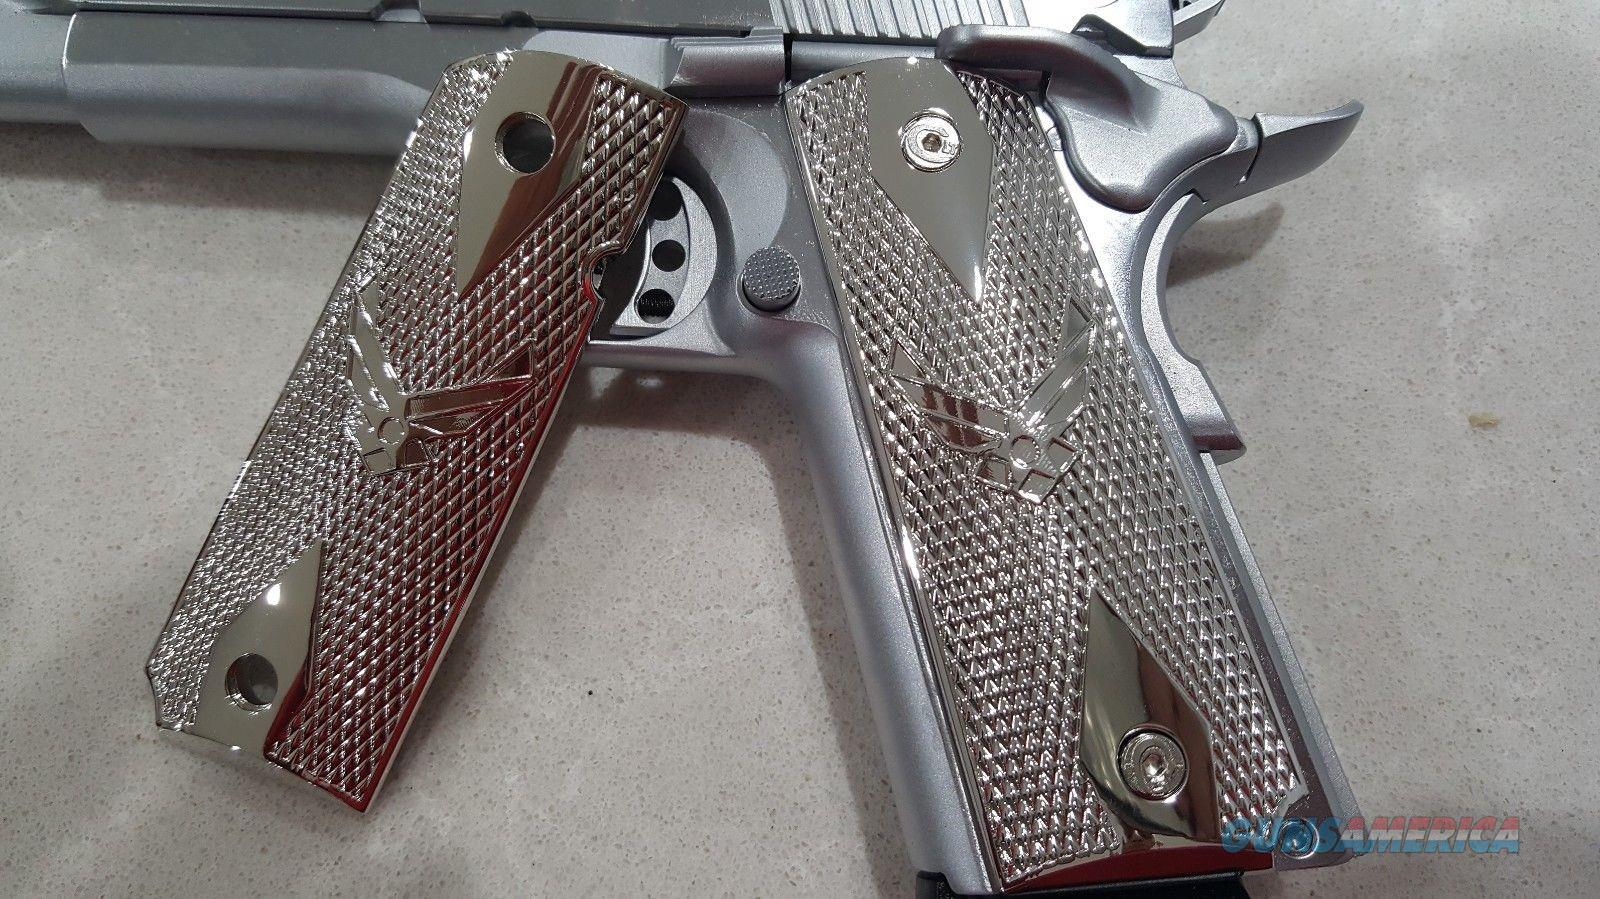 1911 Grips US Air Force Full Size Checkered Nickel Plated Screws Included  Non-Guns > Gun Parts > 1911